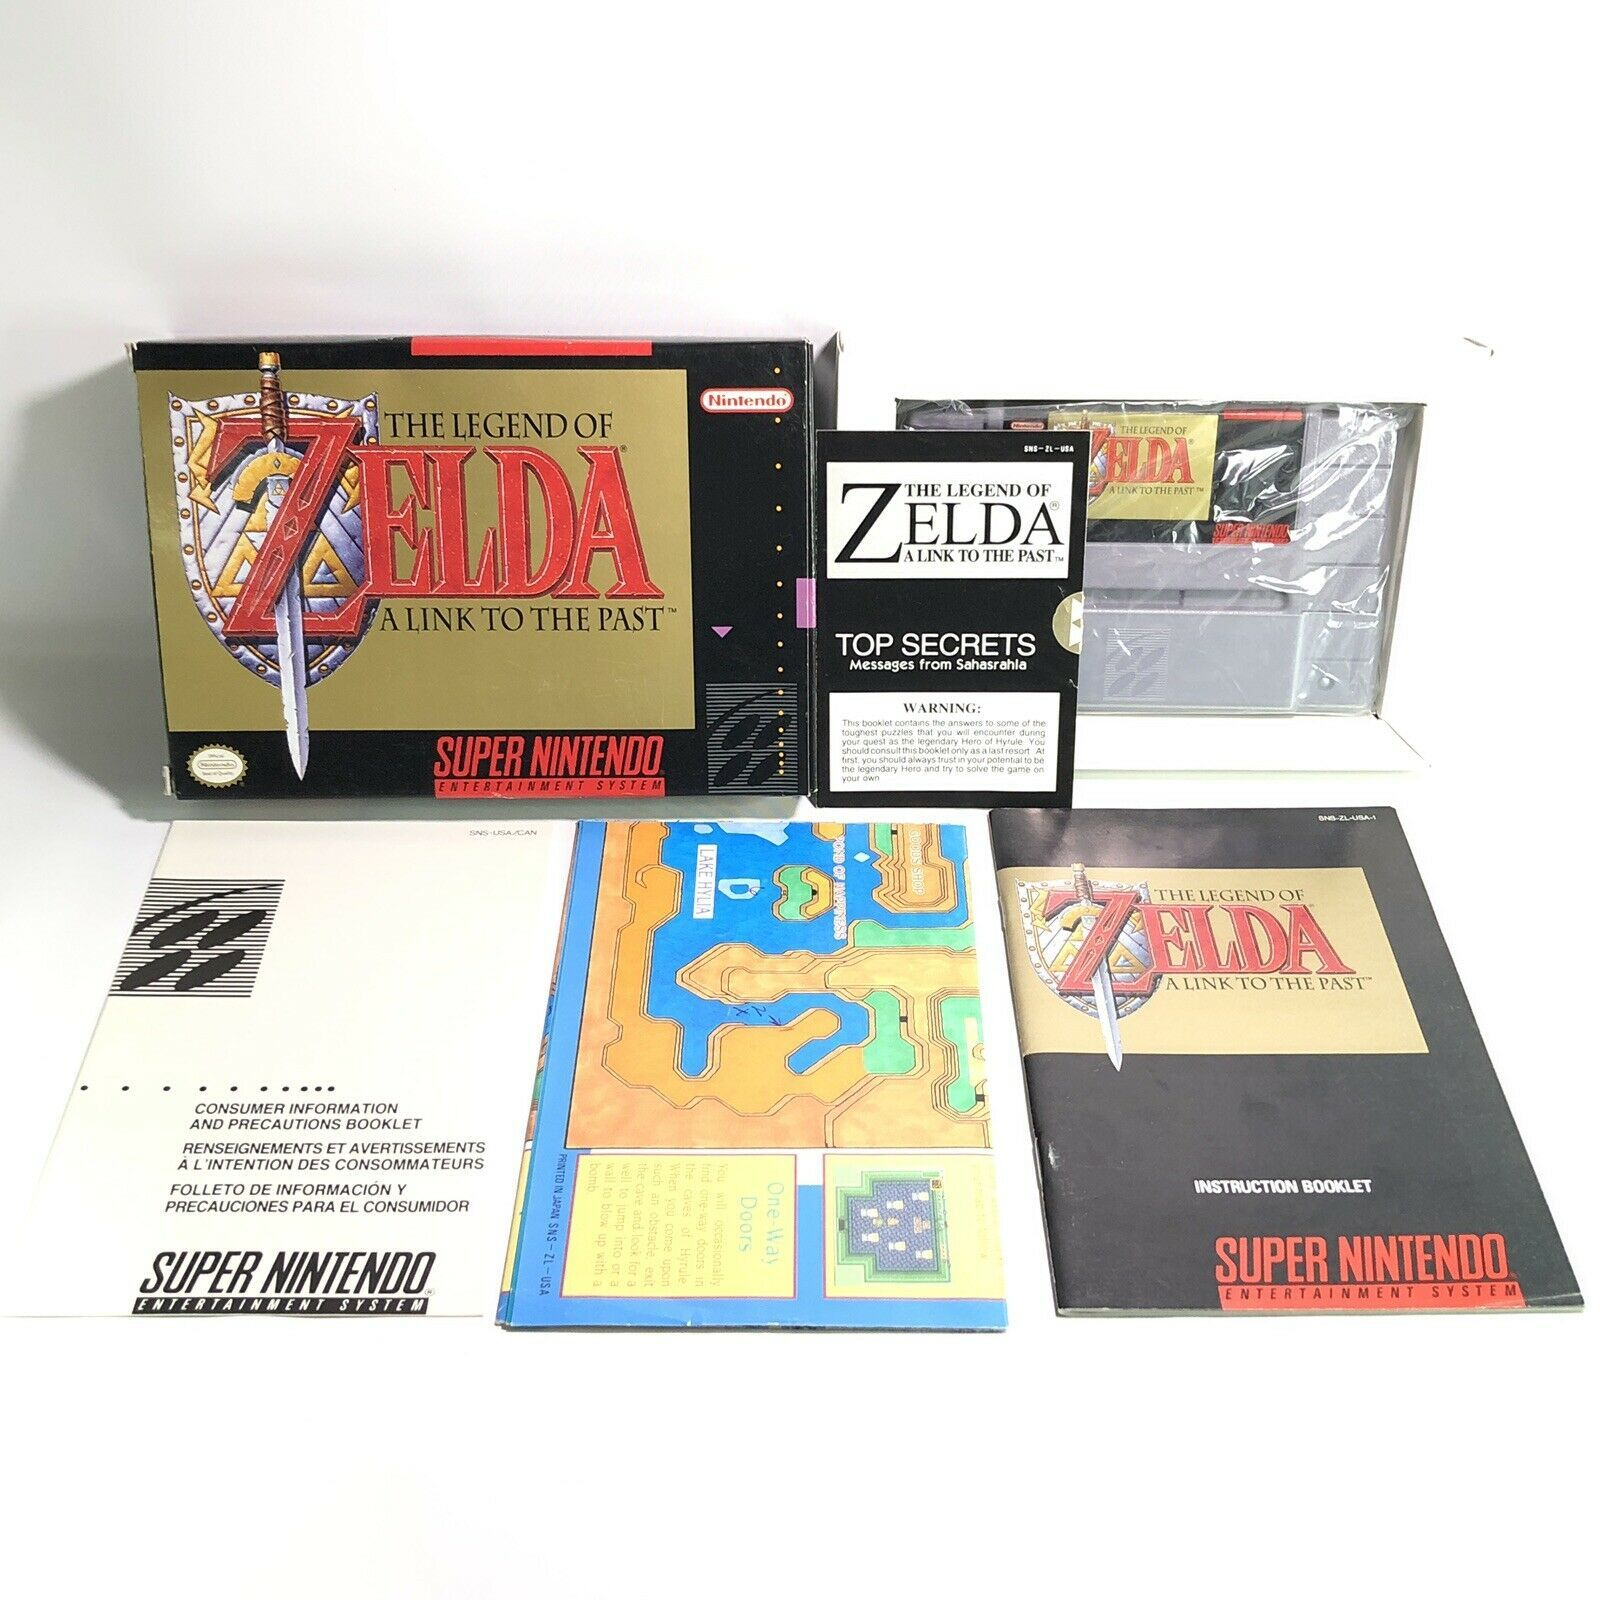 SNES The Legend of Zelda: A Link to the Past Complete CIB Excellent 1st Pribting - $346.49